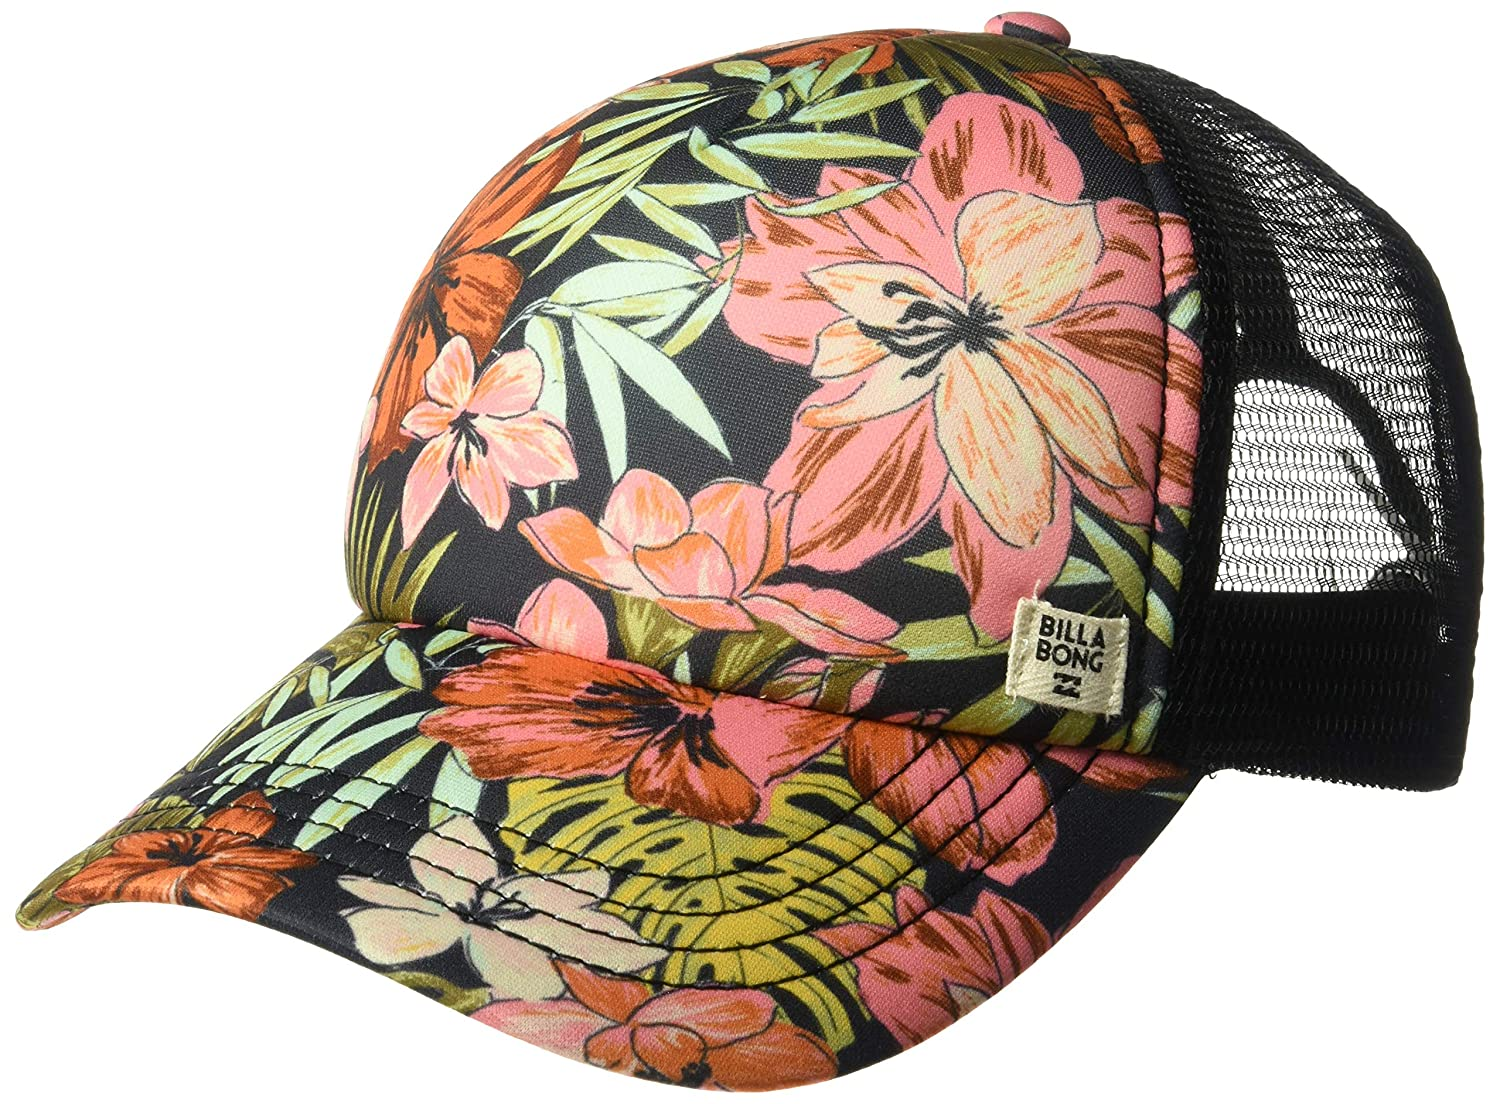 Billabong Girls Trucker Hat: Amazon.es: Ropa y accesorios